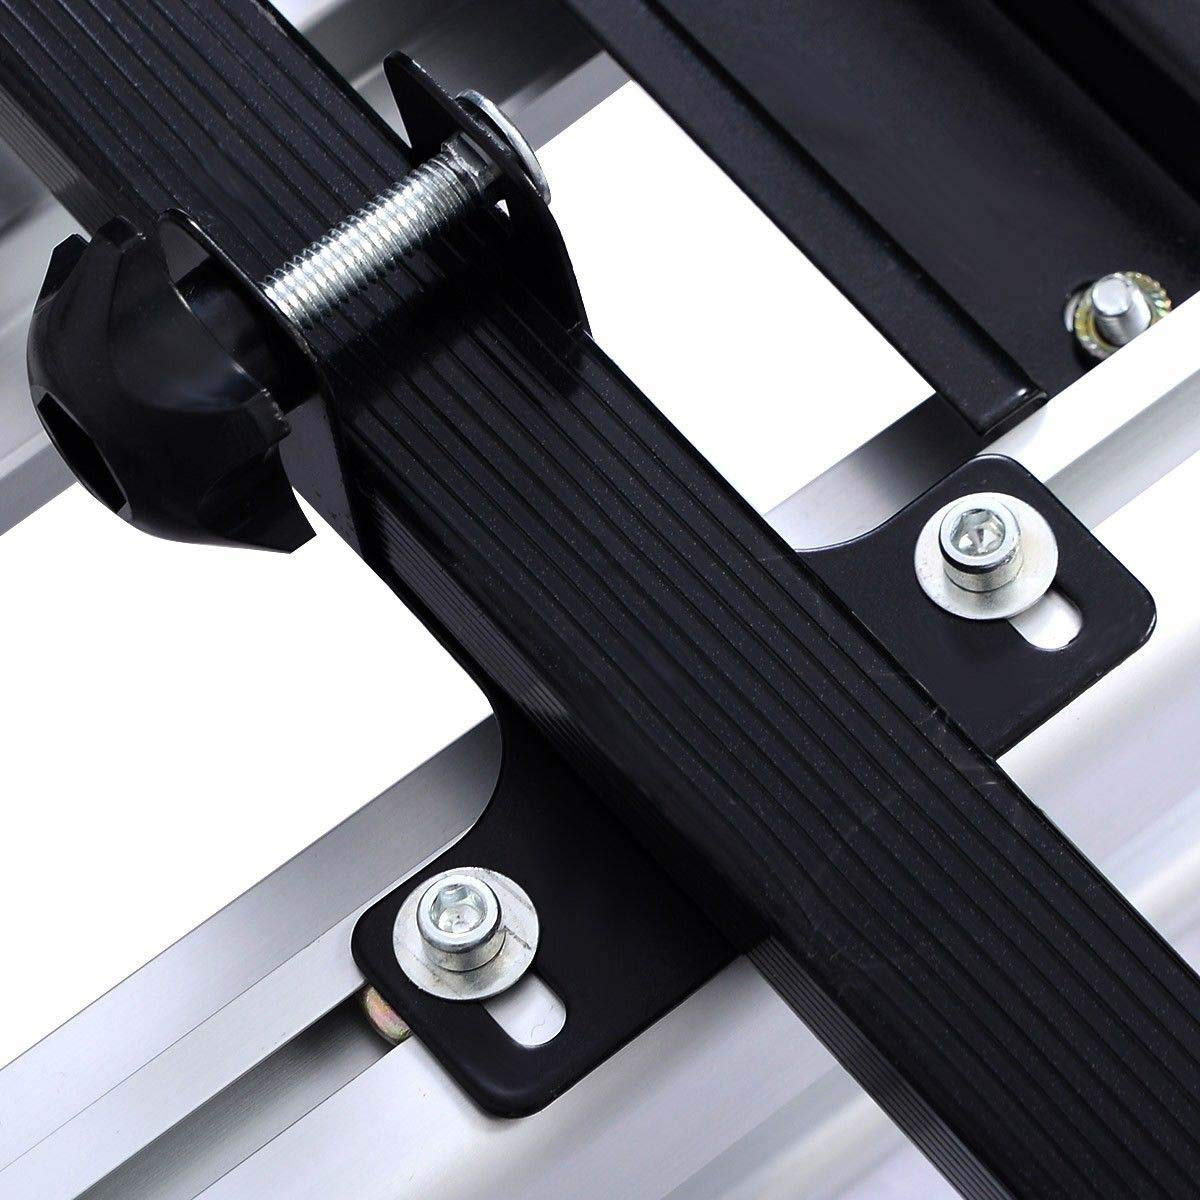 Universal Aluminum Car Roof Rack Basket COSTWAY Roof Tray Luggage Cargo Carrier Platform Rack with 100 Kg Weight Capacity